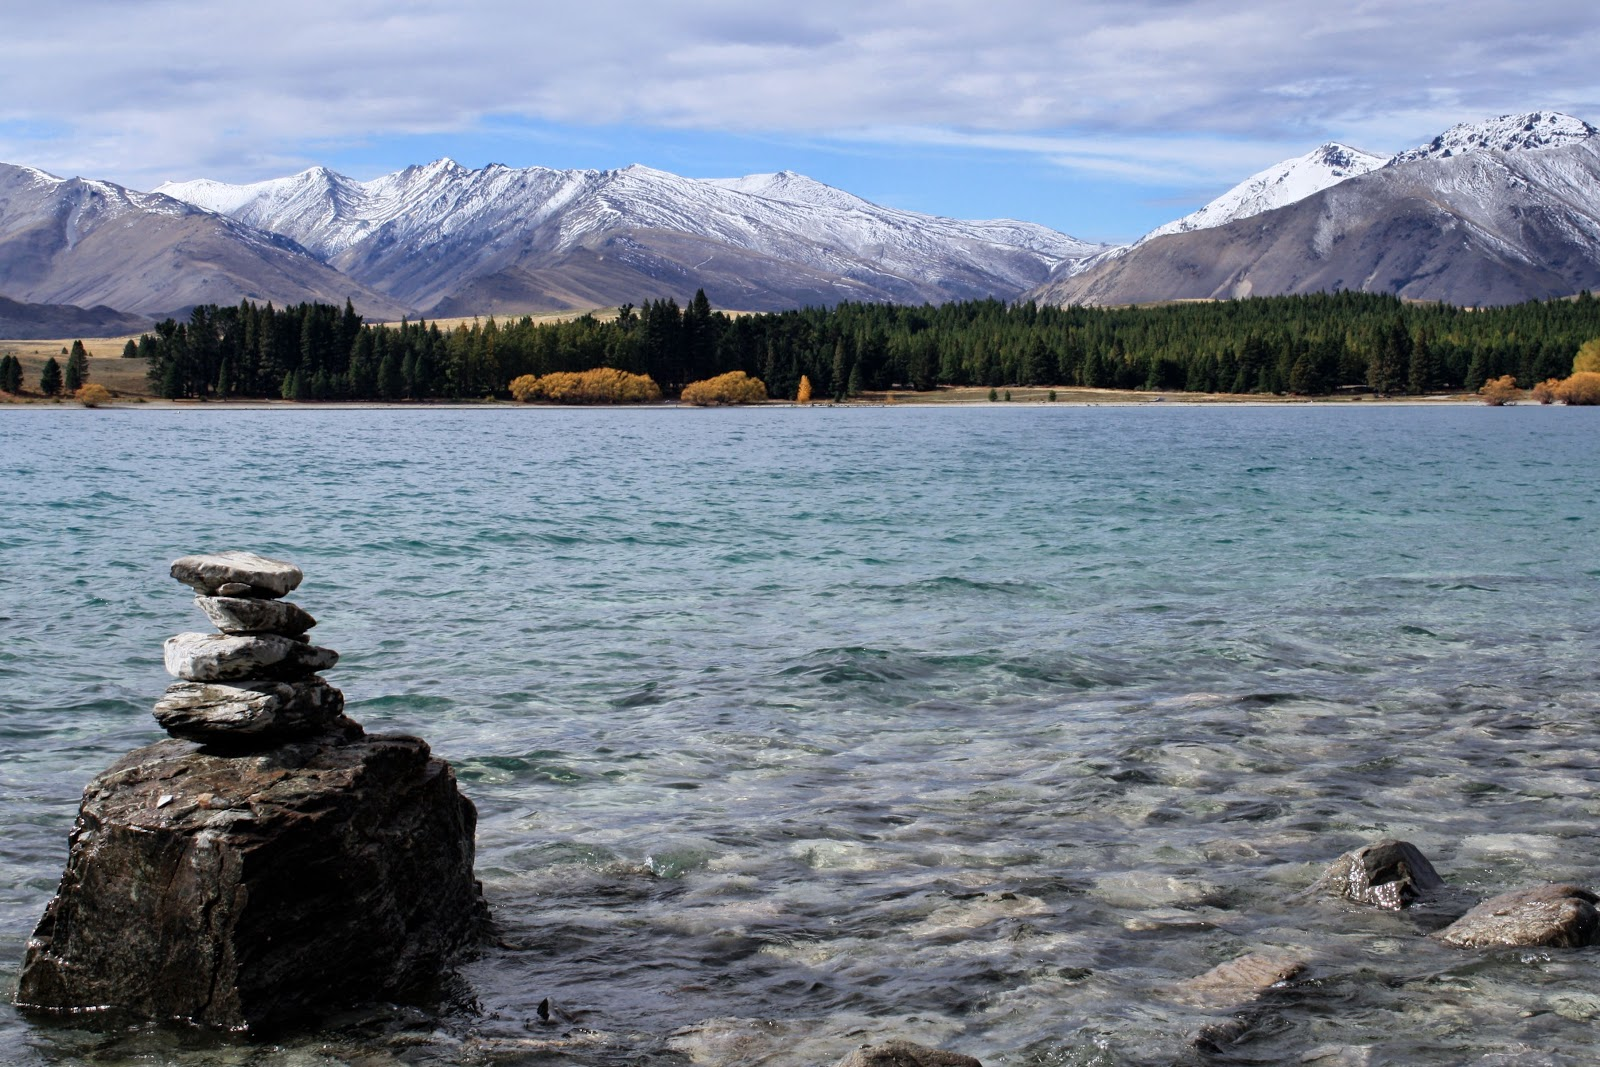 A pile of stacked stones in Lake Tekapo, in the South Island of New Zealand.